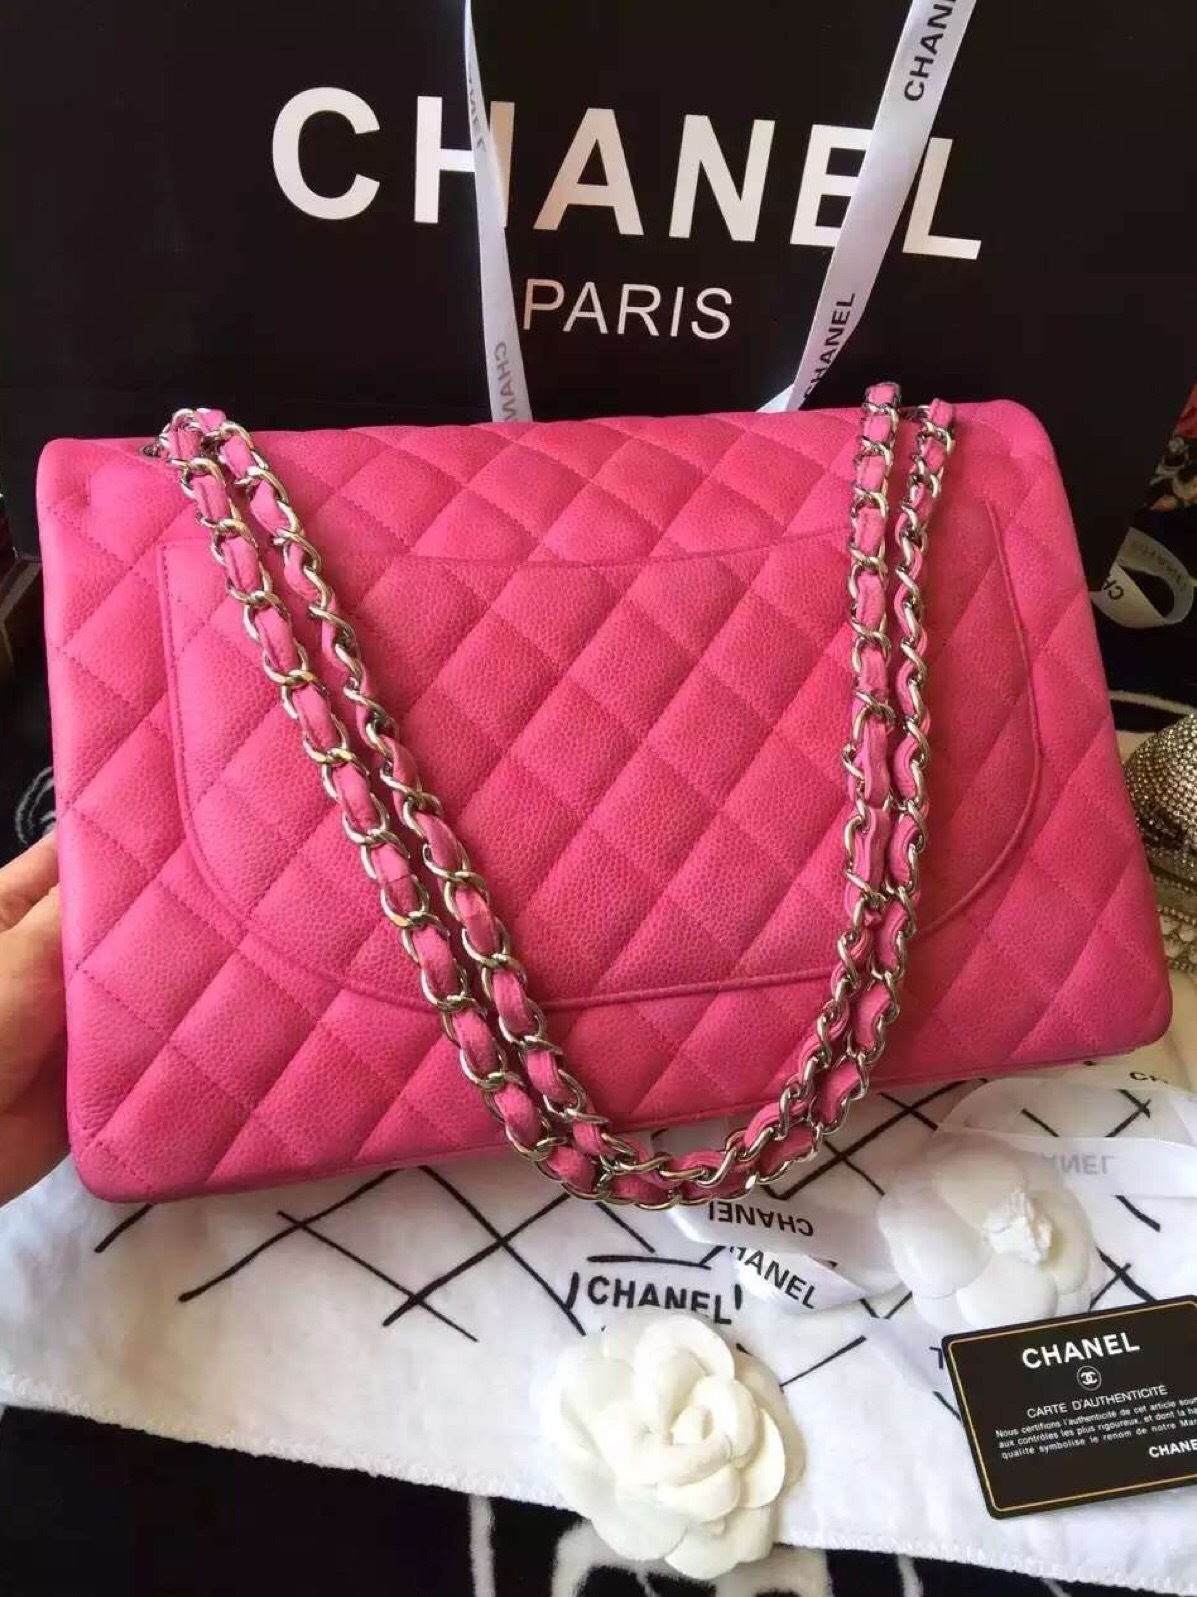 a2ef6b529d73 Authentic Chanel Hot Pink Fuchsia Maxi Caviar Leather Double Flap Bag SHW